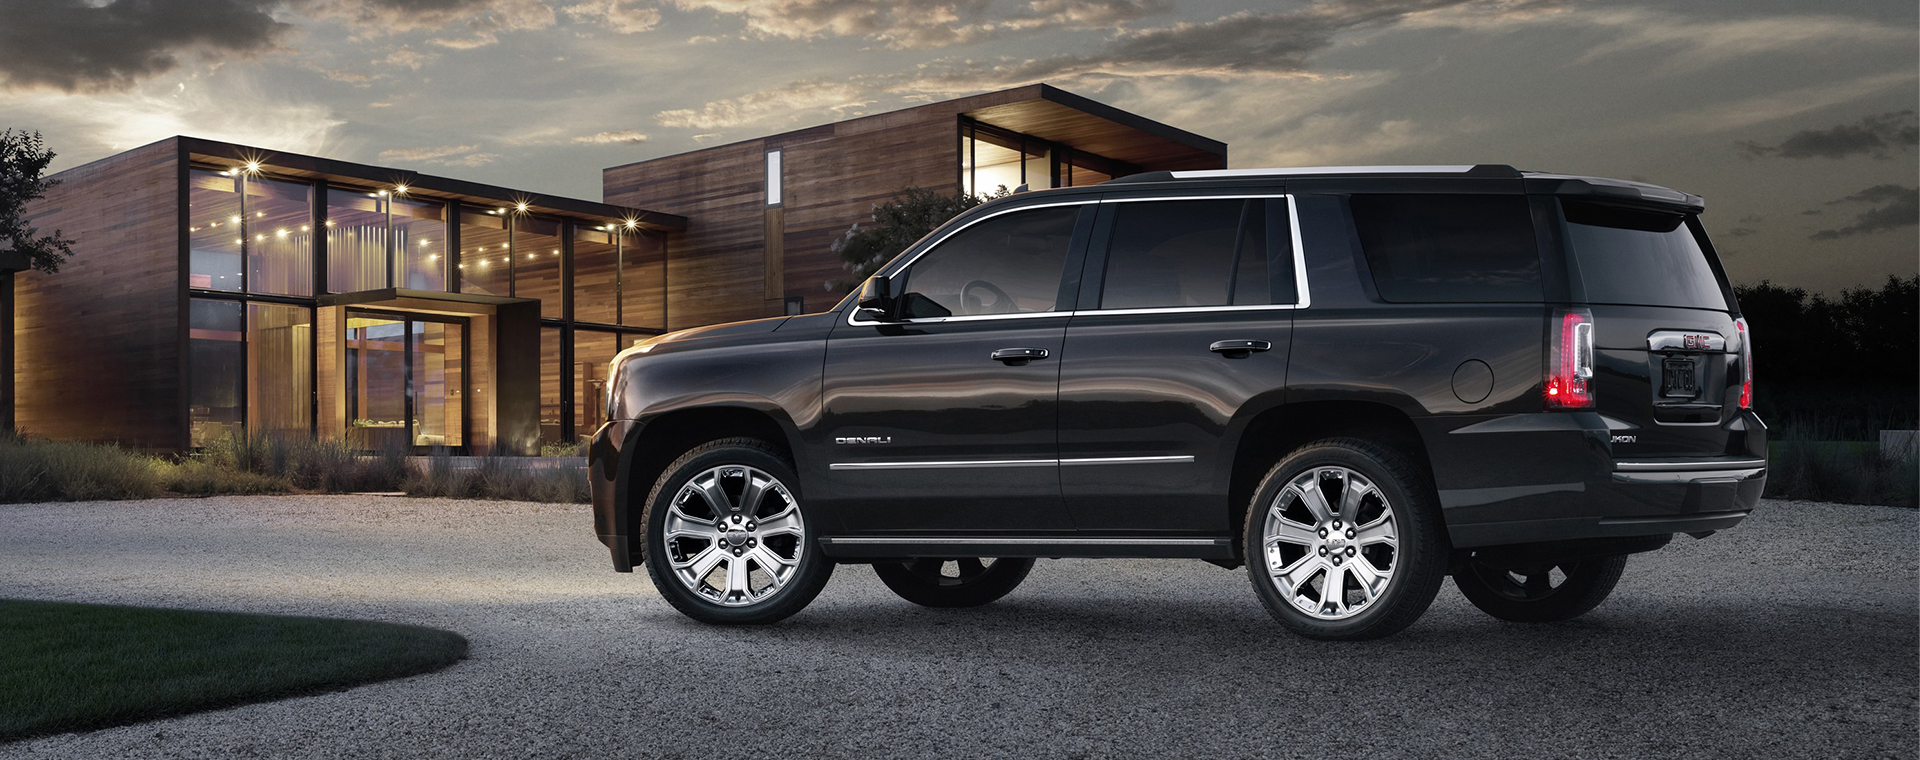 New Acadia inventory at Quirk Buick GMC